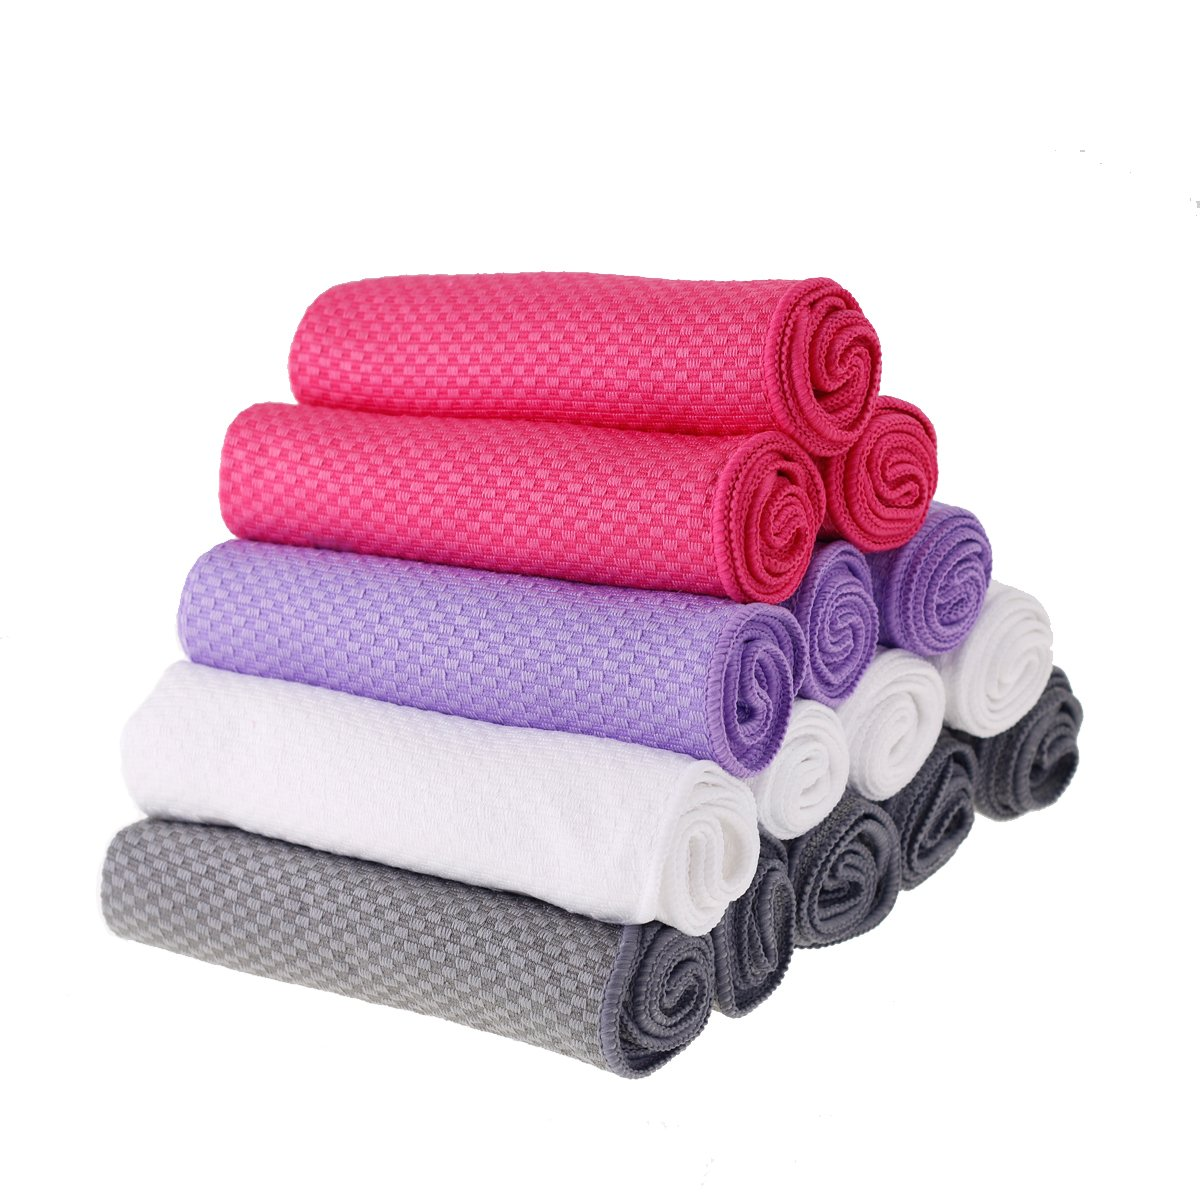 Microfiber Cloth and Car Towel - 12 Pack Polishing Cloths for Shiny Best Kitchen Appliance